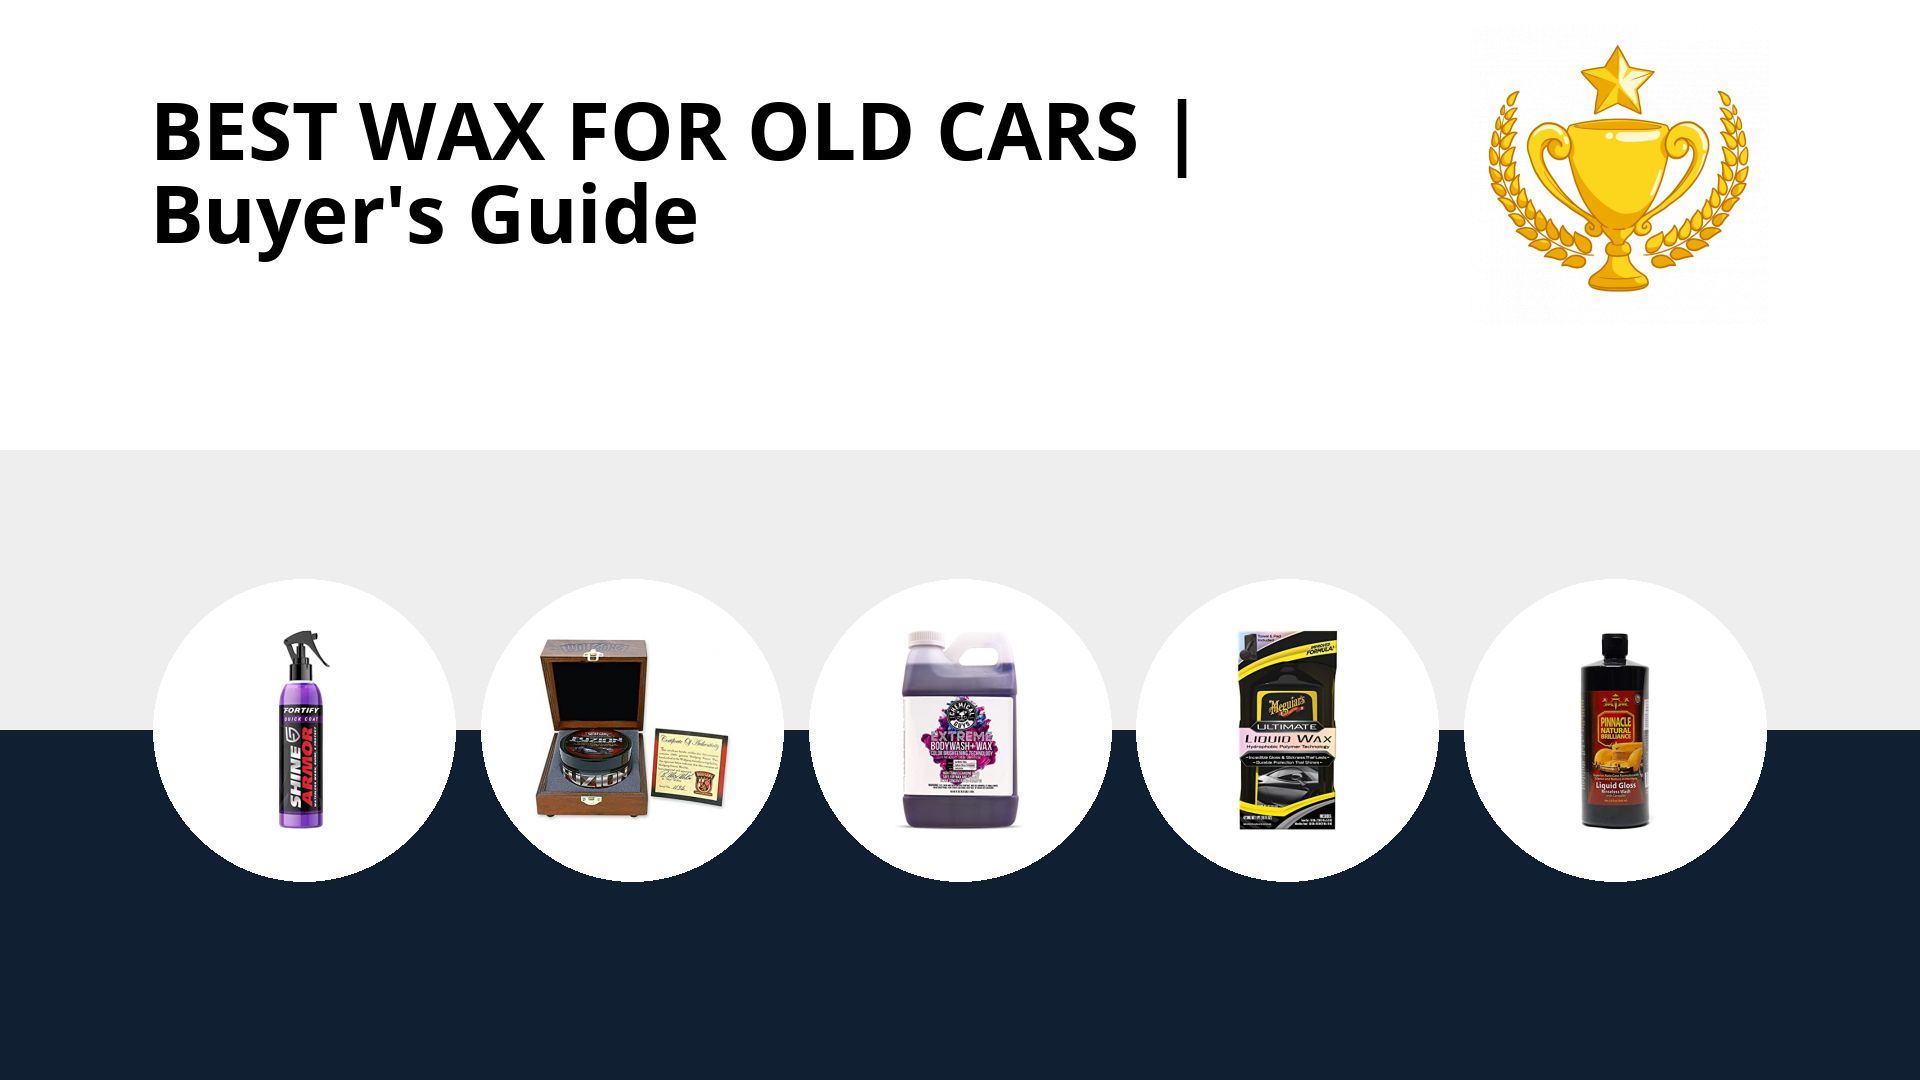 Best Wax For Old Cars: image